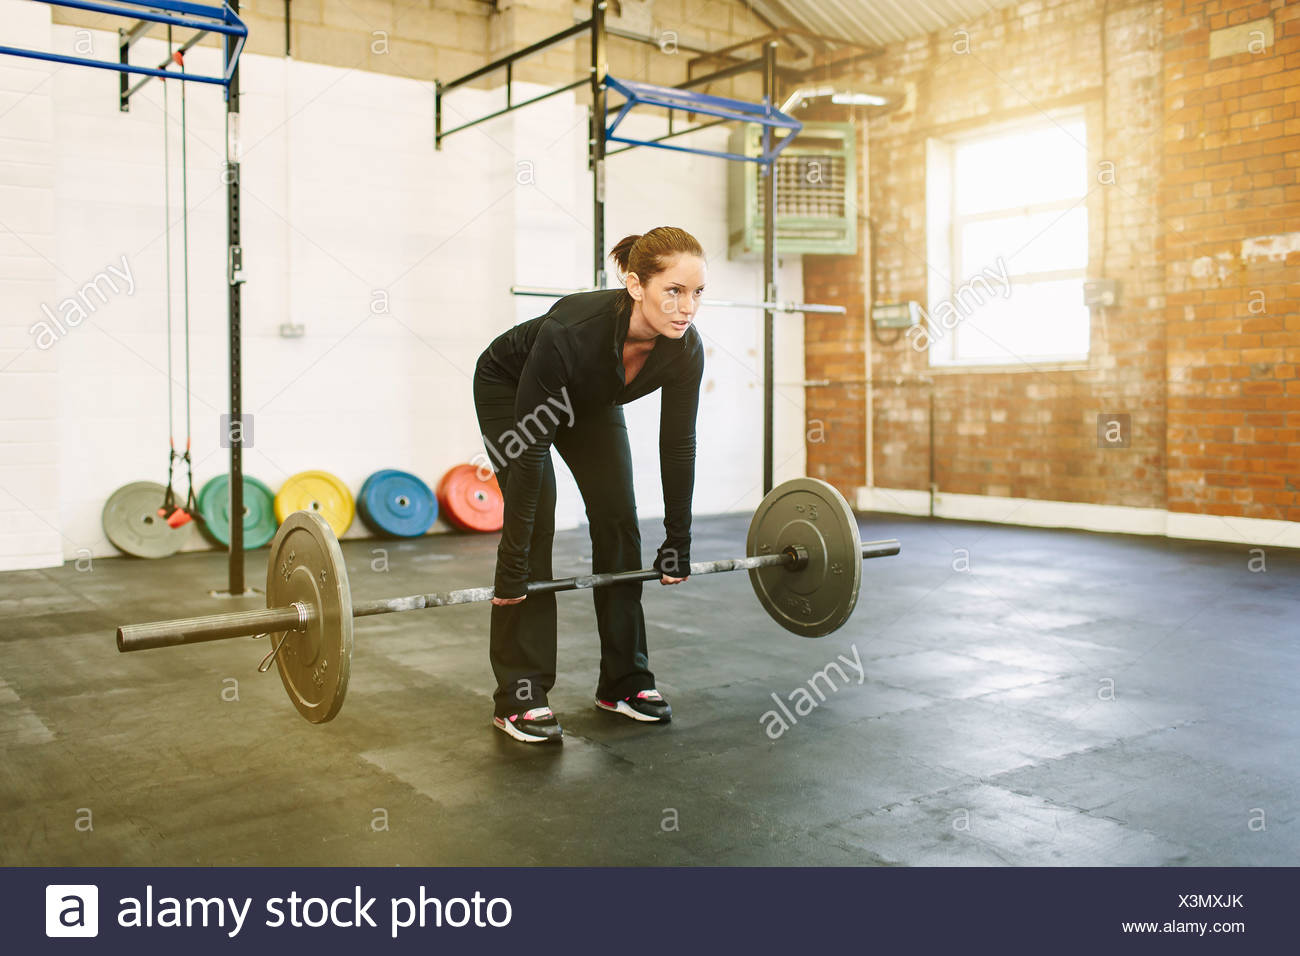 Woman lifting barbell in gym Photo Stock